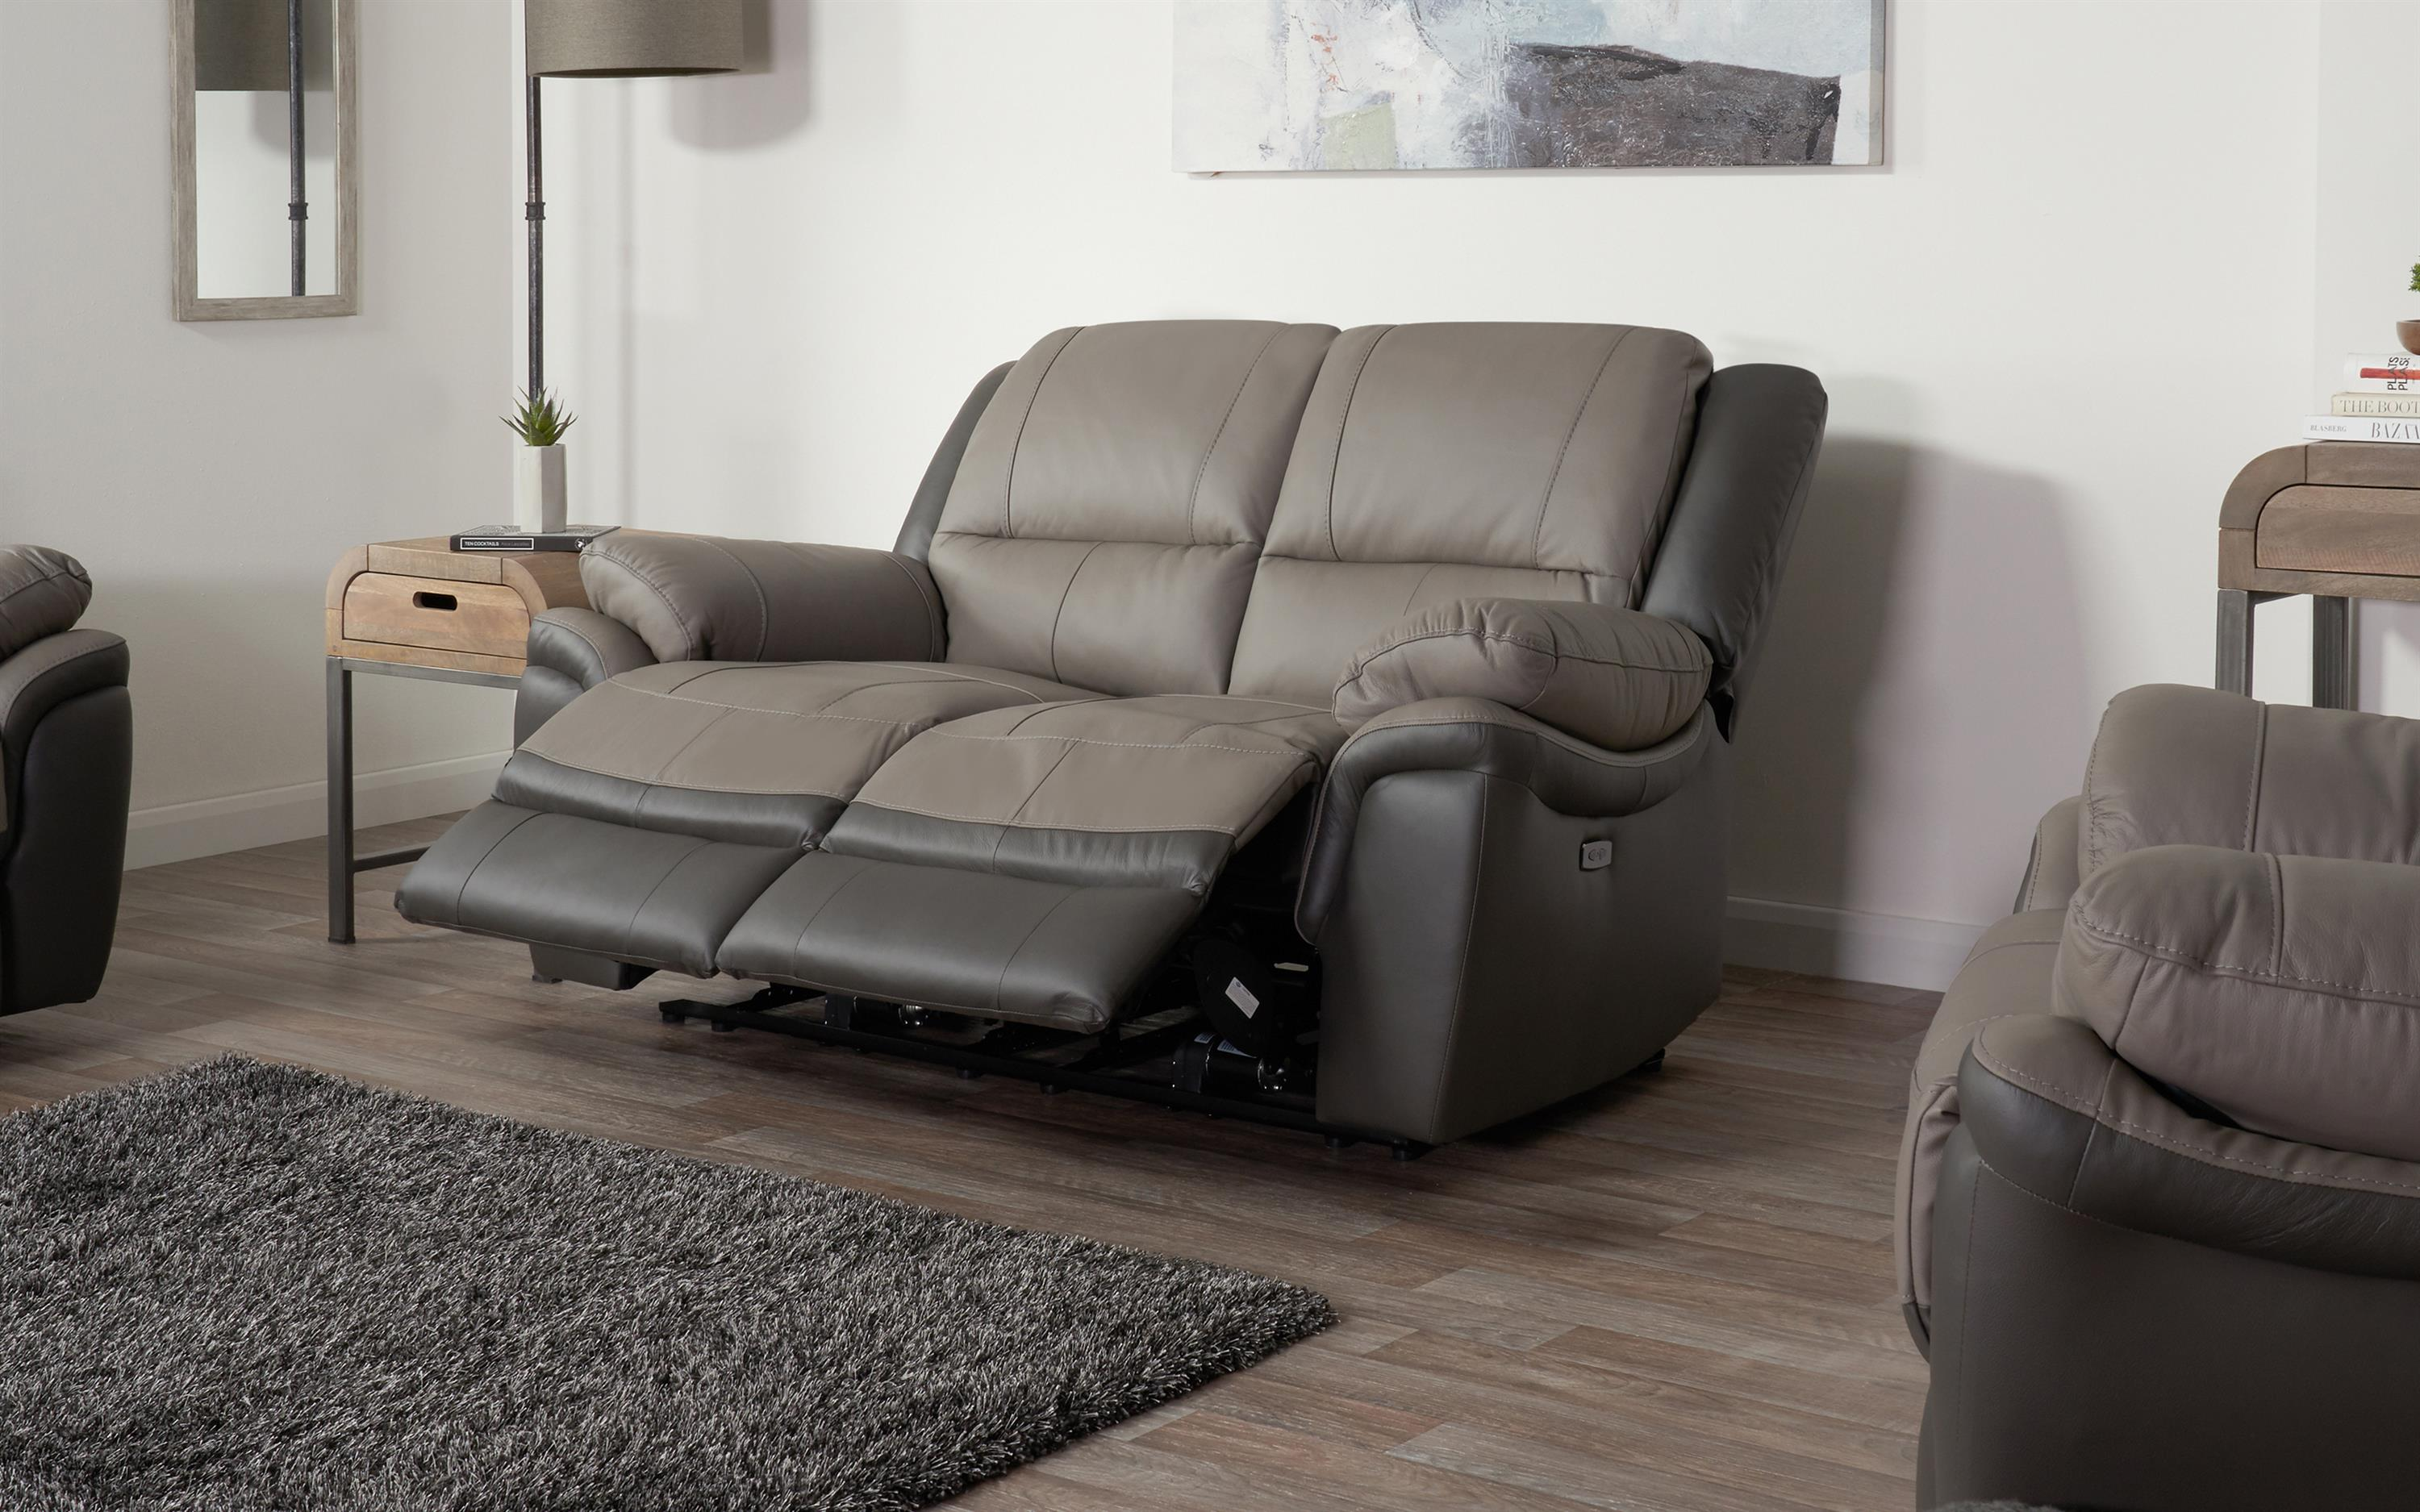 Pluto 2 Seater Power Recliner Sofa